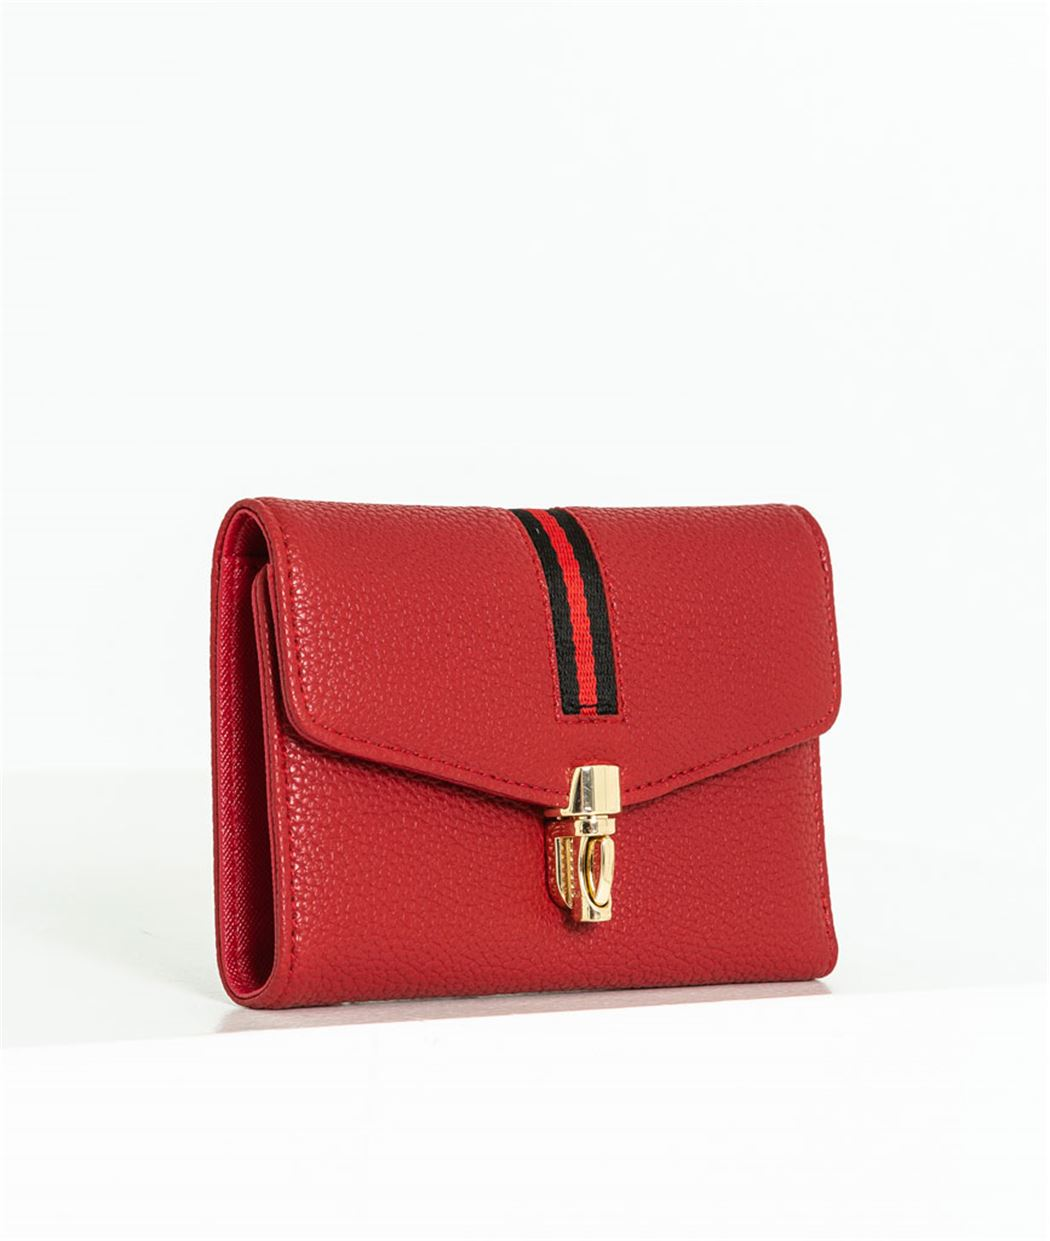 Portefeuille femme rouge sport chic ROUGE